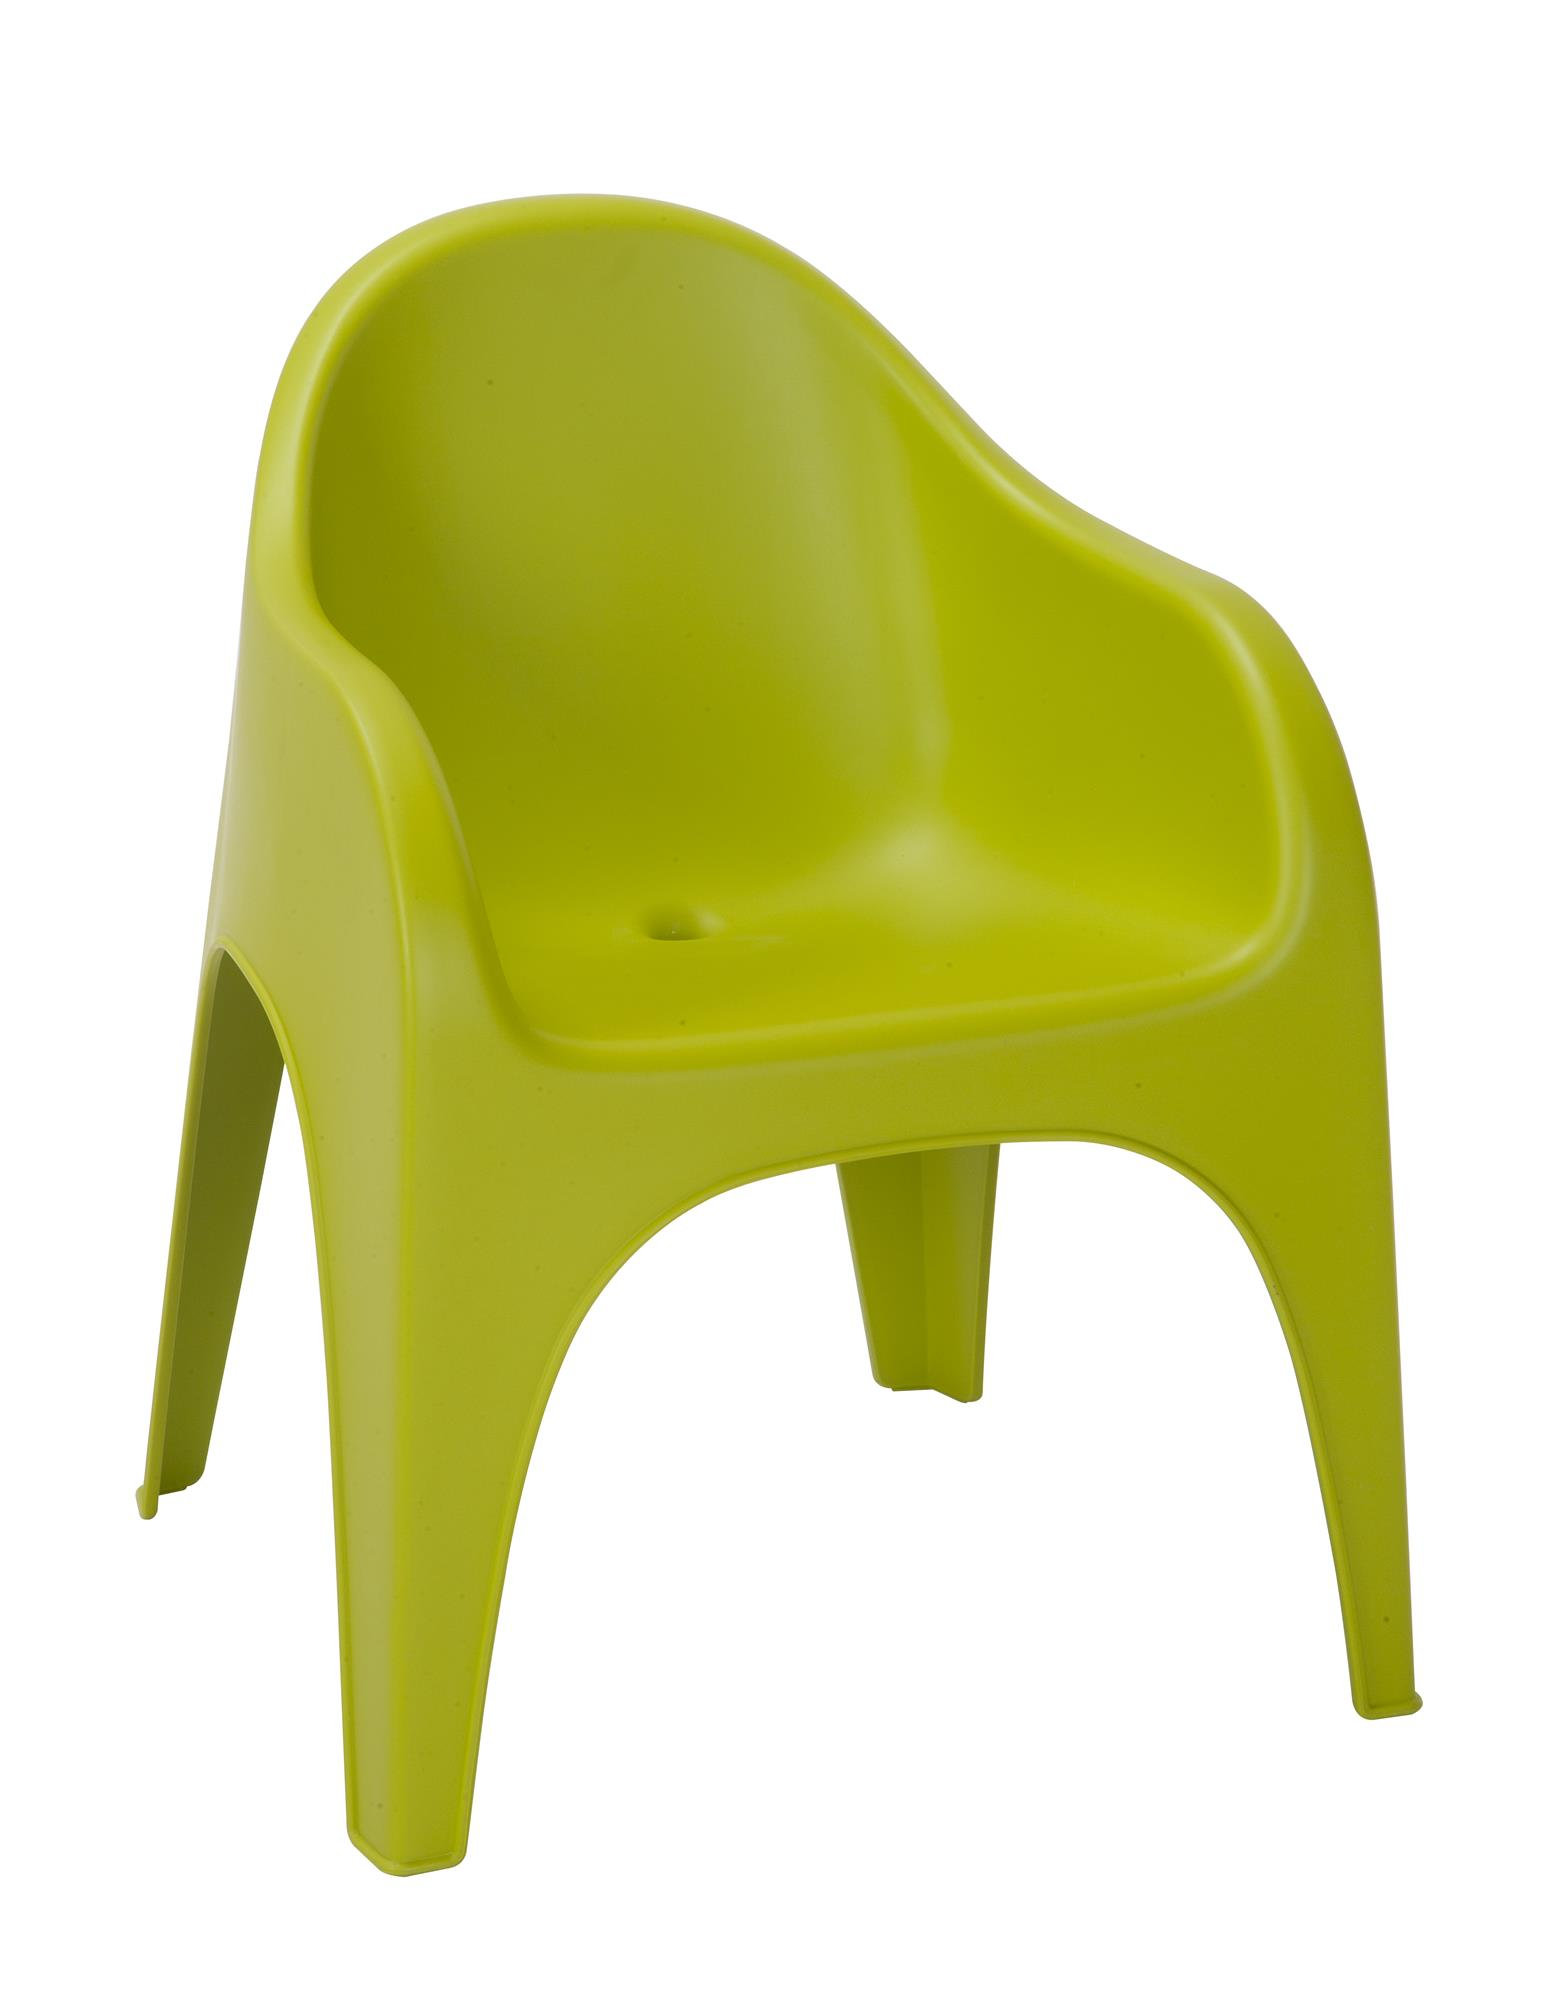 COSCO Commercial Molded JUGA Chair Designed By Karim Rashid, Indoor, Outdoor,  Stacking, Green, 2 Pack   Walmart.com